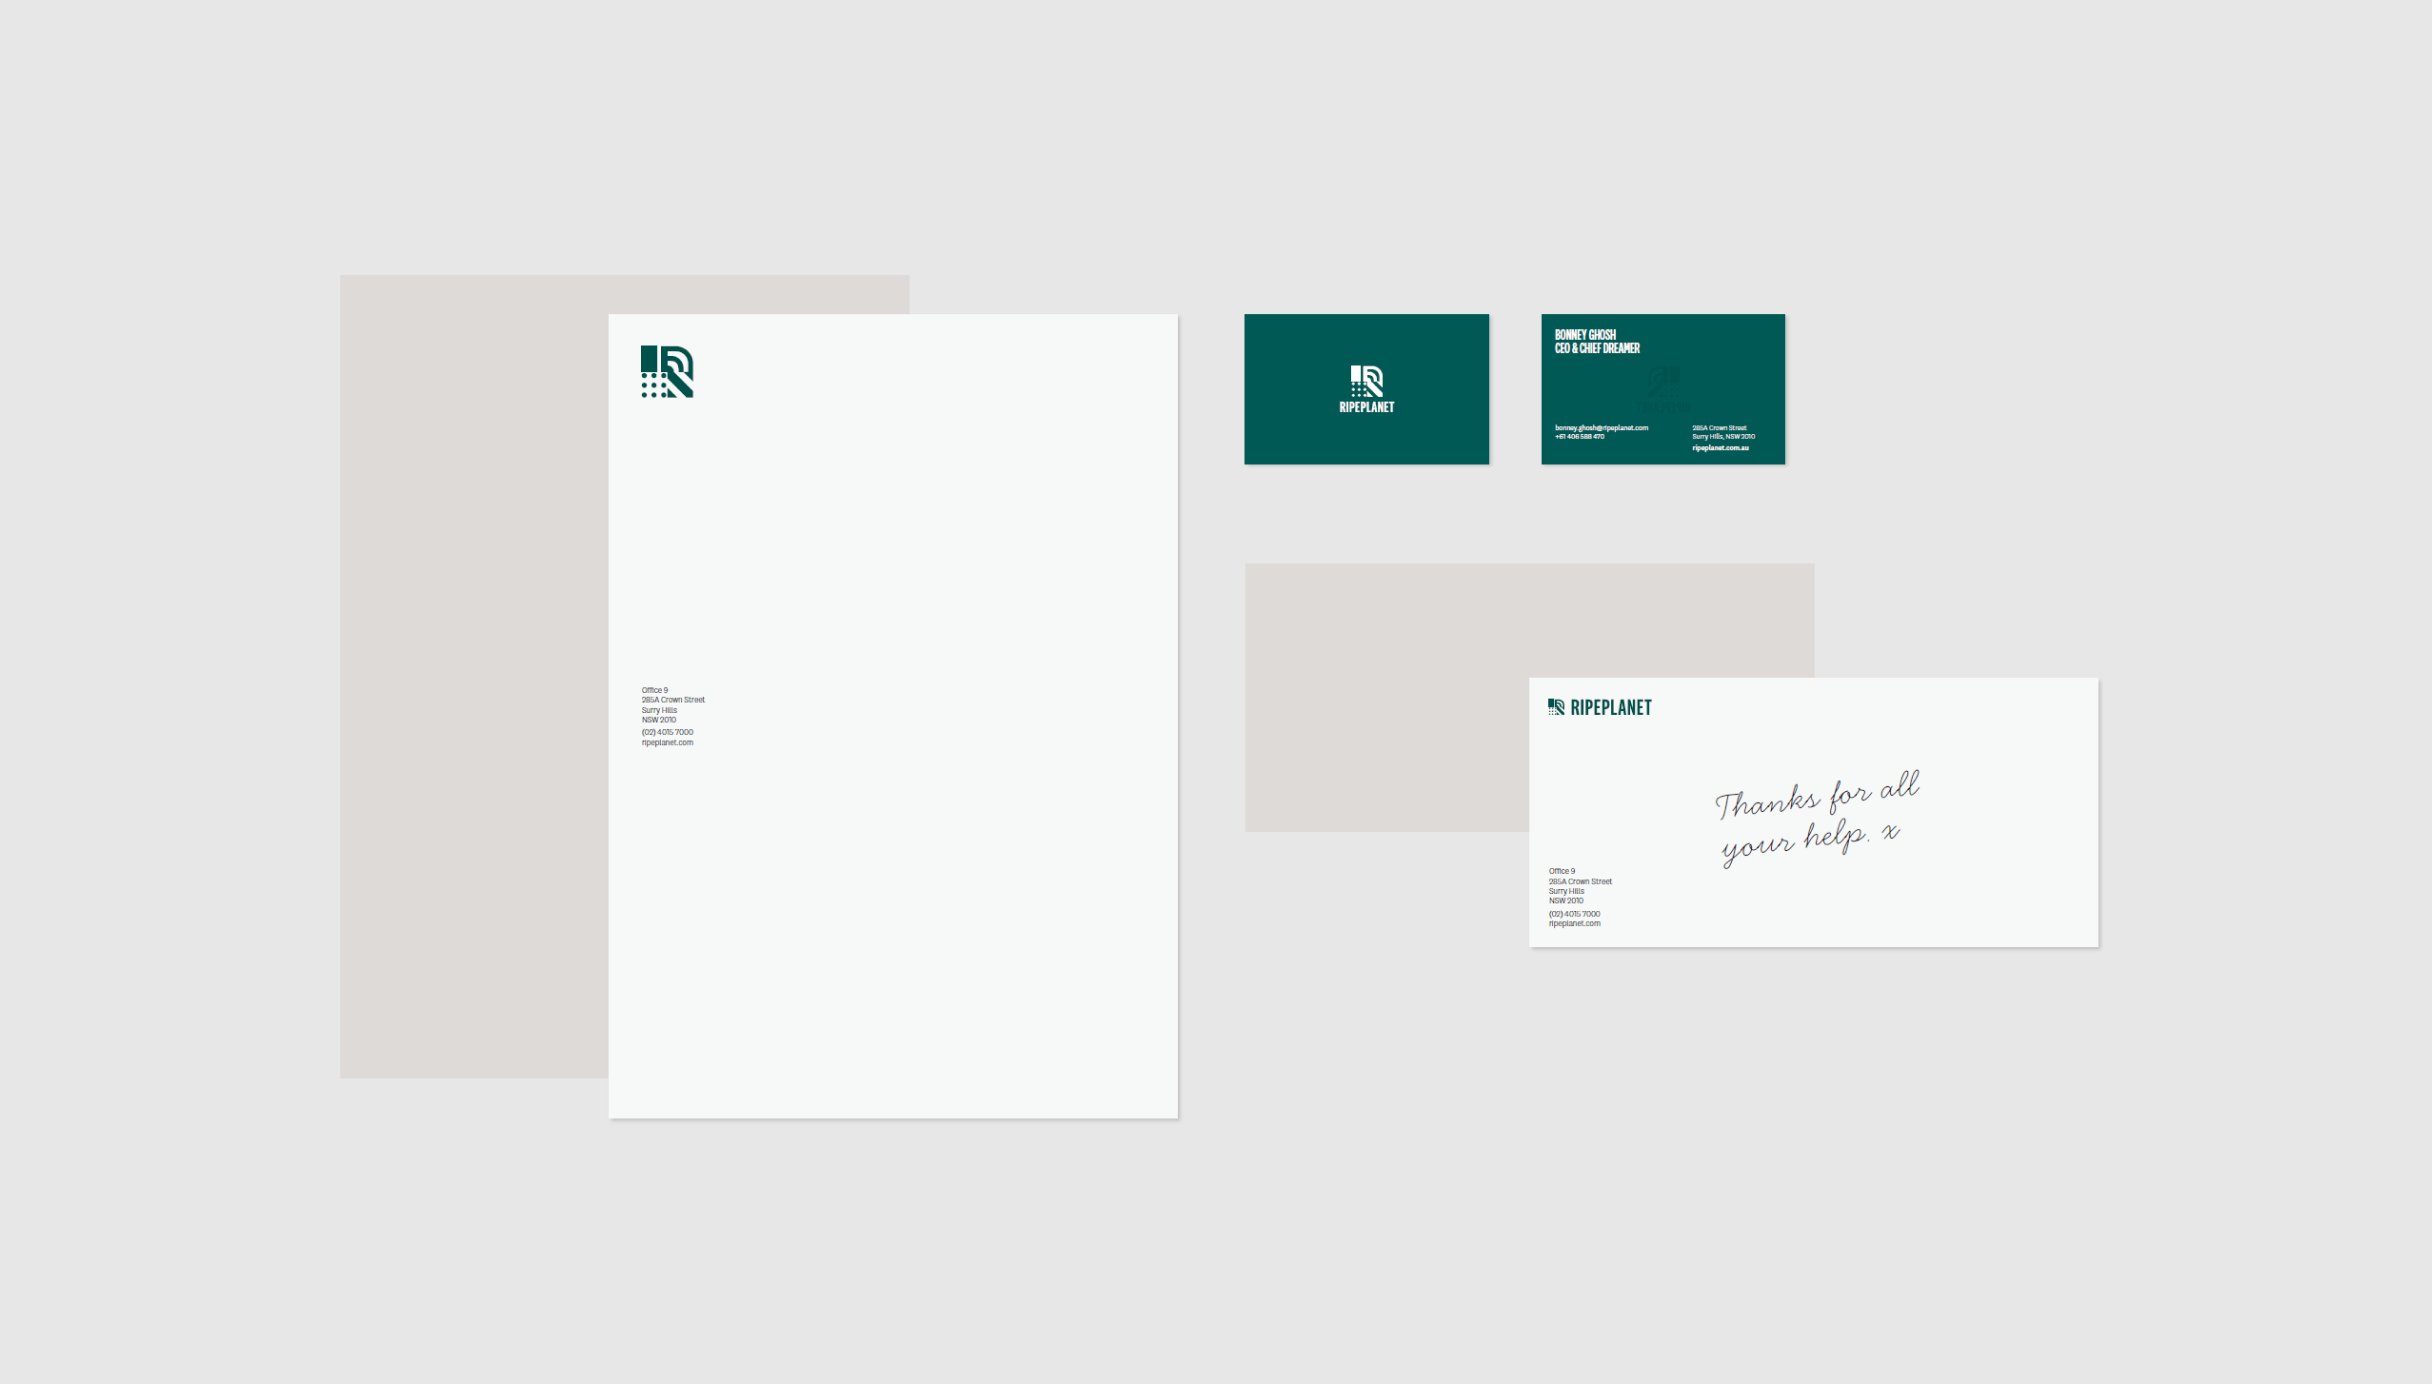 Ripe Planet new branding business cards and document marking